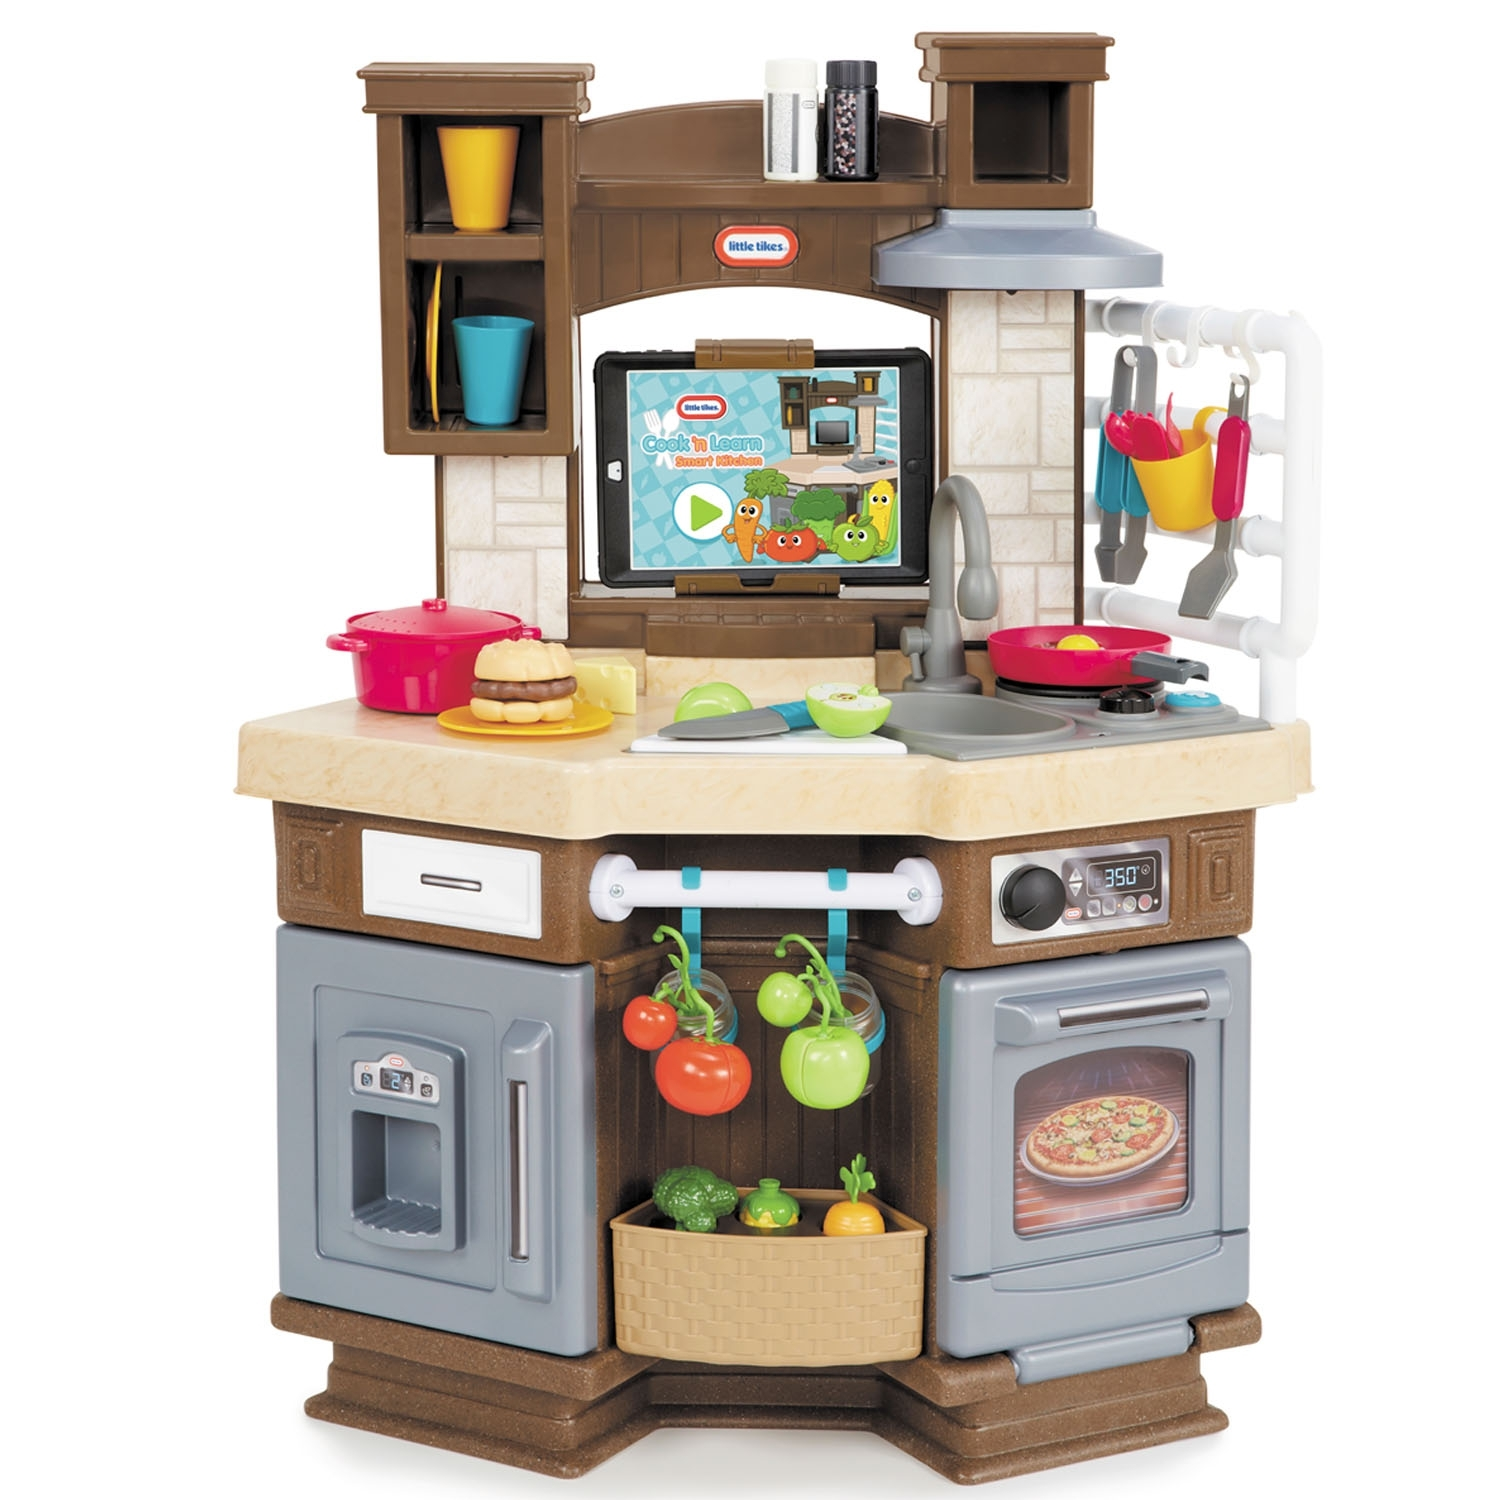 Permalink to Little Tikes Kitchen Play Set